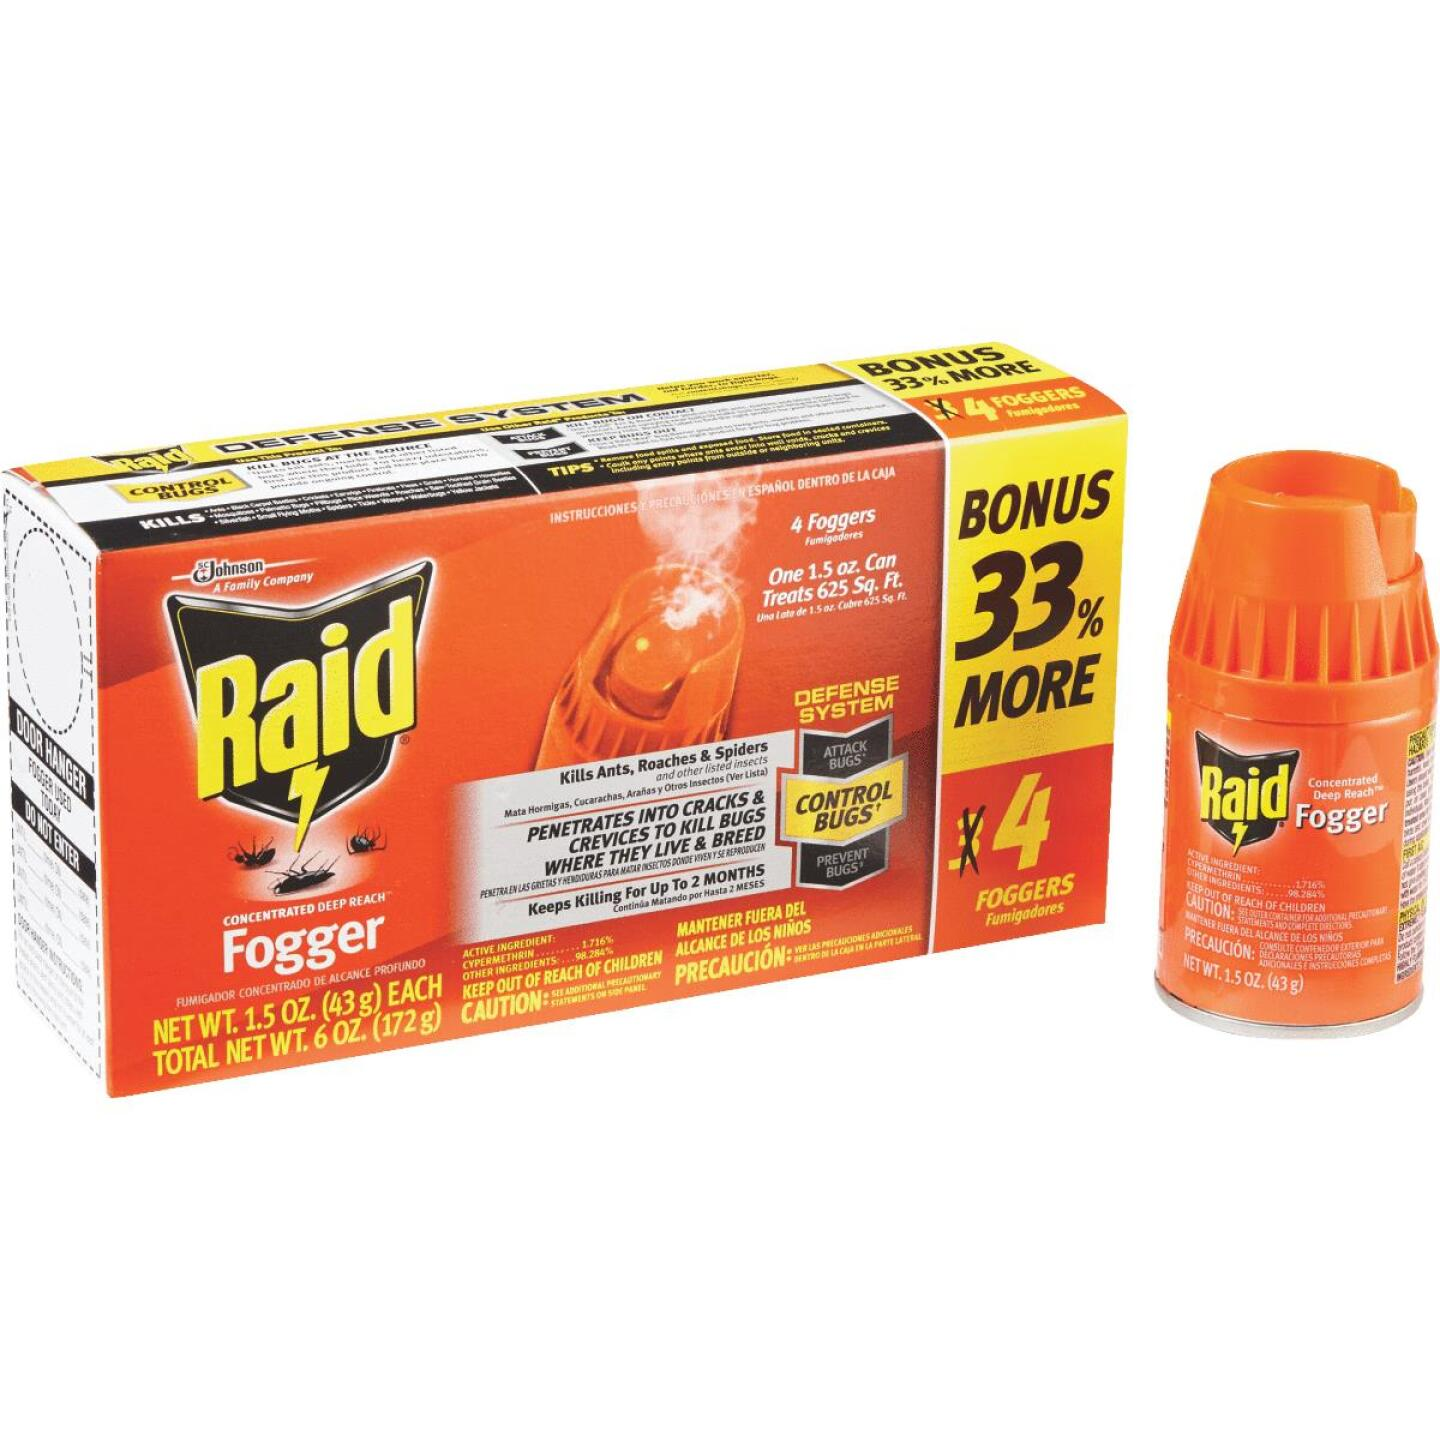 Raid Concentrated Deep Reach 1.5 Oz. Indoor Insect Fogger (4-Pack) Image 1